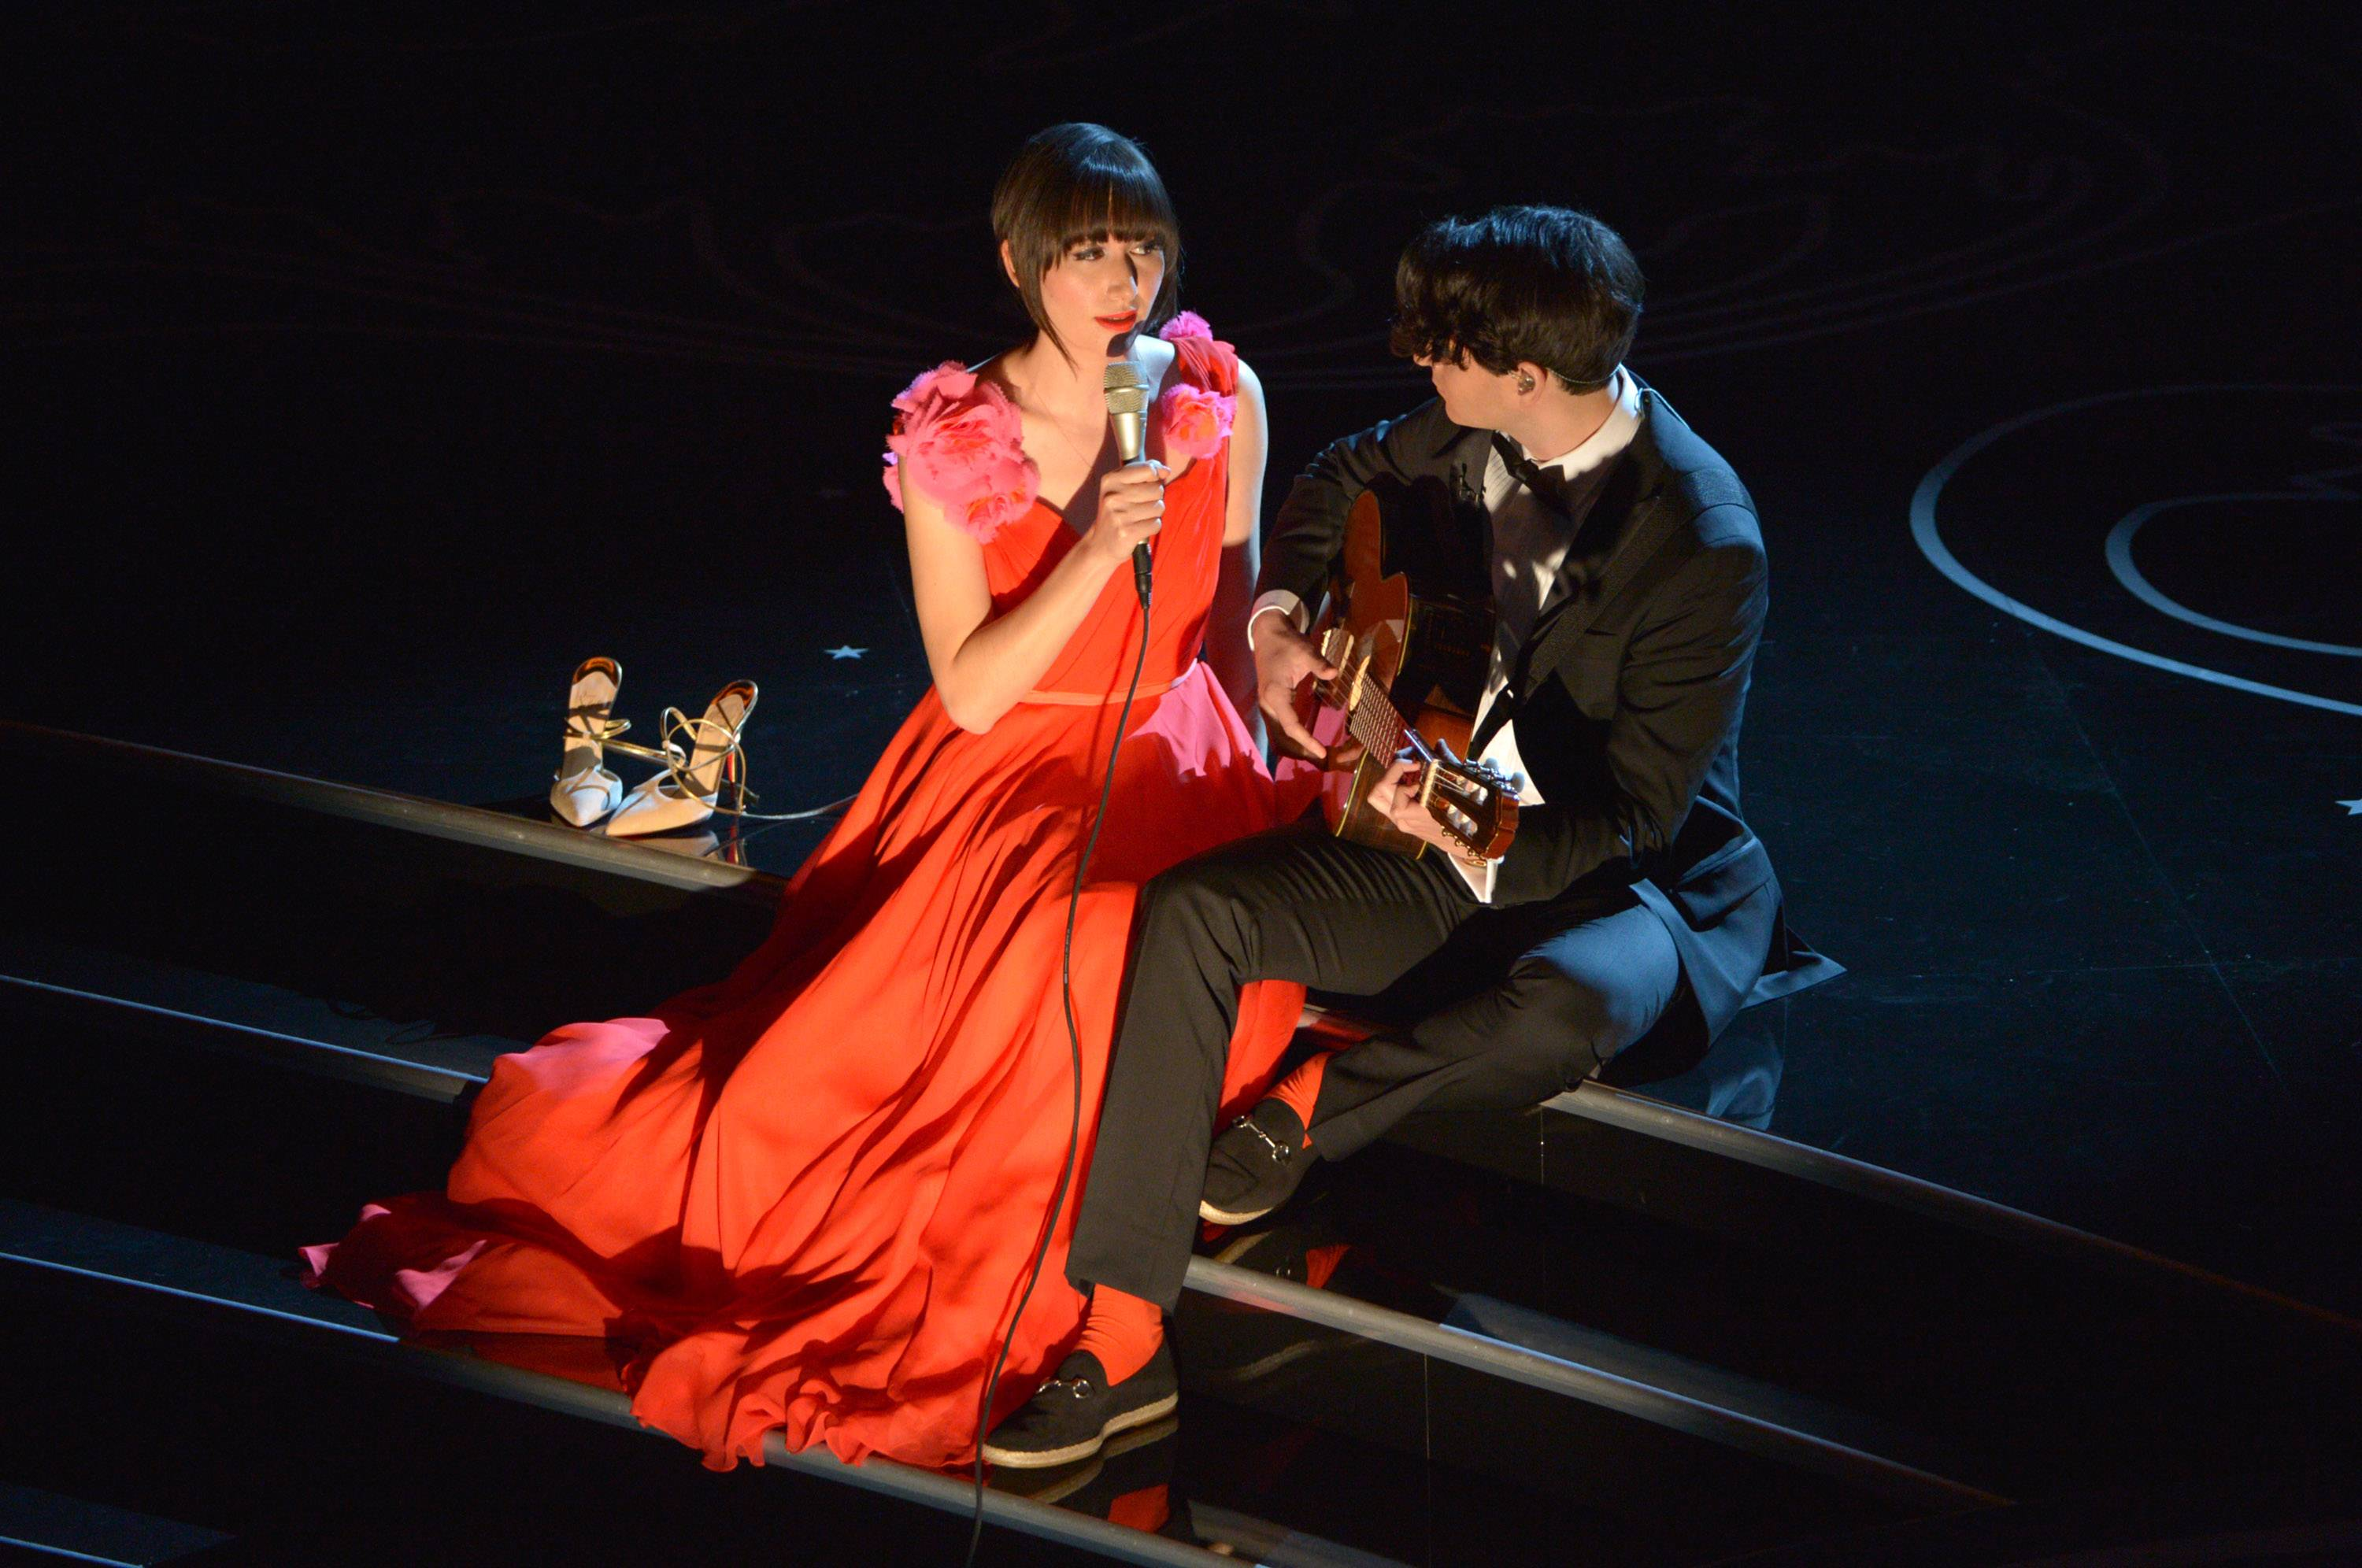 Karen O, left, and Ezra Koenig perform during the Oscars at the Dolby Theatre on Sunday.